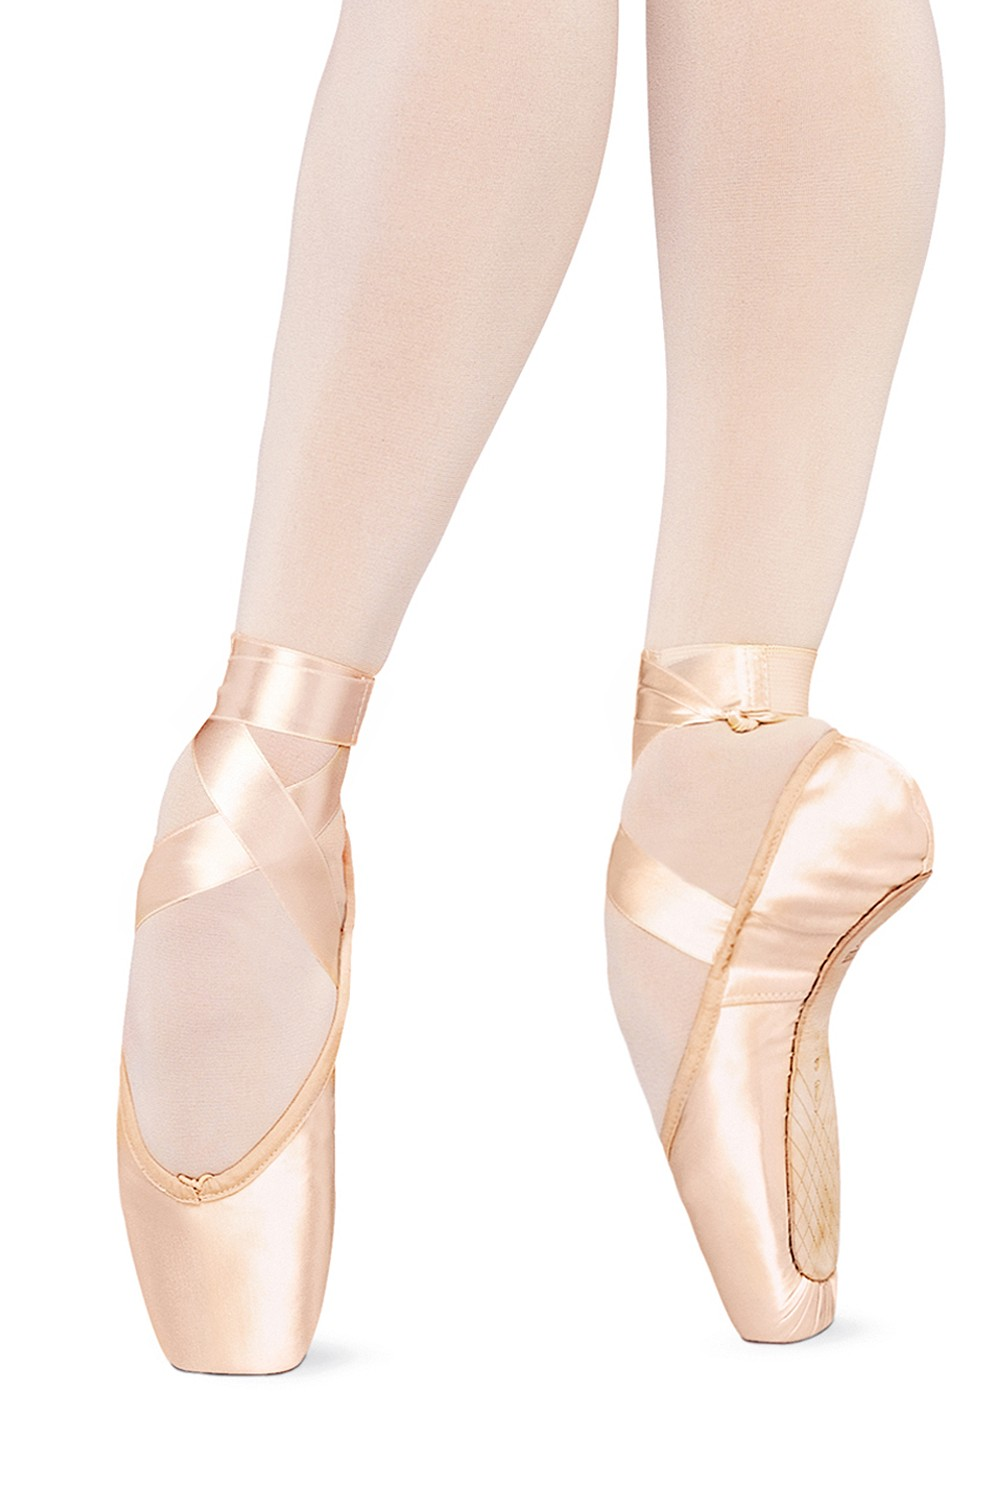 Serenade Mrk Ii Pointe Shoes